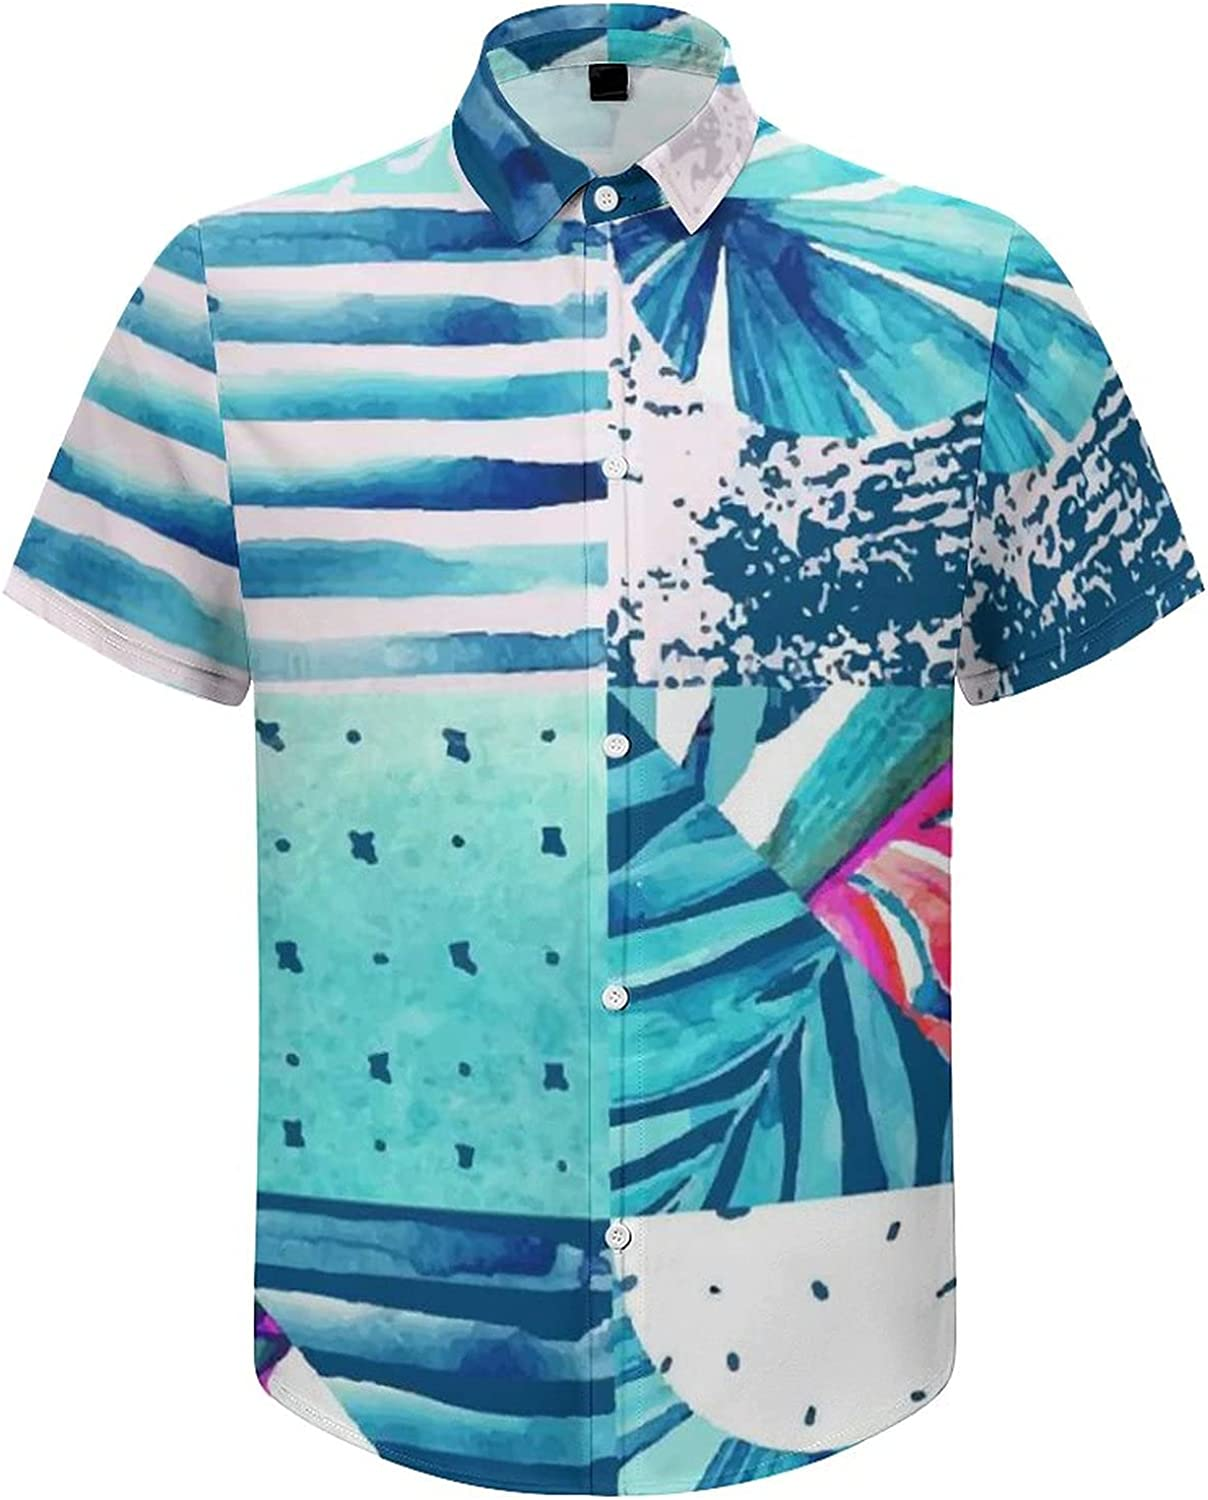 Men's Regular-Fit Short-Sleeve Printed Party Holiday Shirt Abstract Tropical Trees River